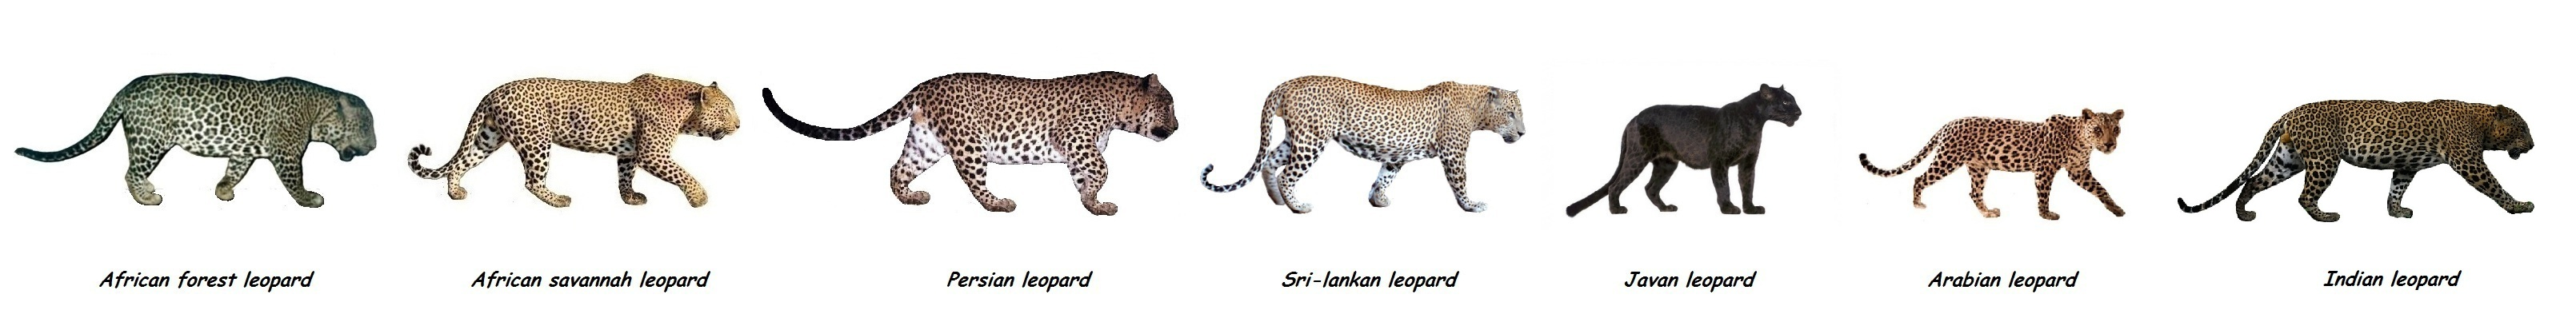 a comparison between the jaguar and leopards The ocelot and the jaguar are both spotted wild cats, but you wouldn't mistake one for the other leopardus pardalis and panthera onca differ greatly in size and coat pattern.